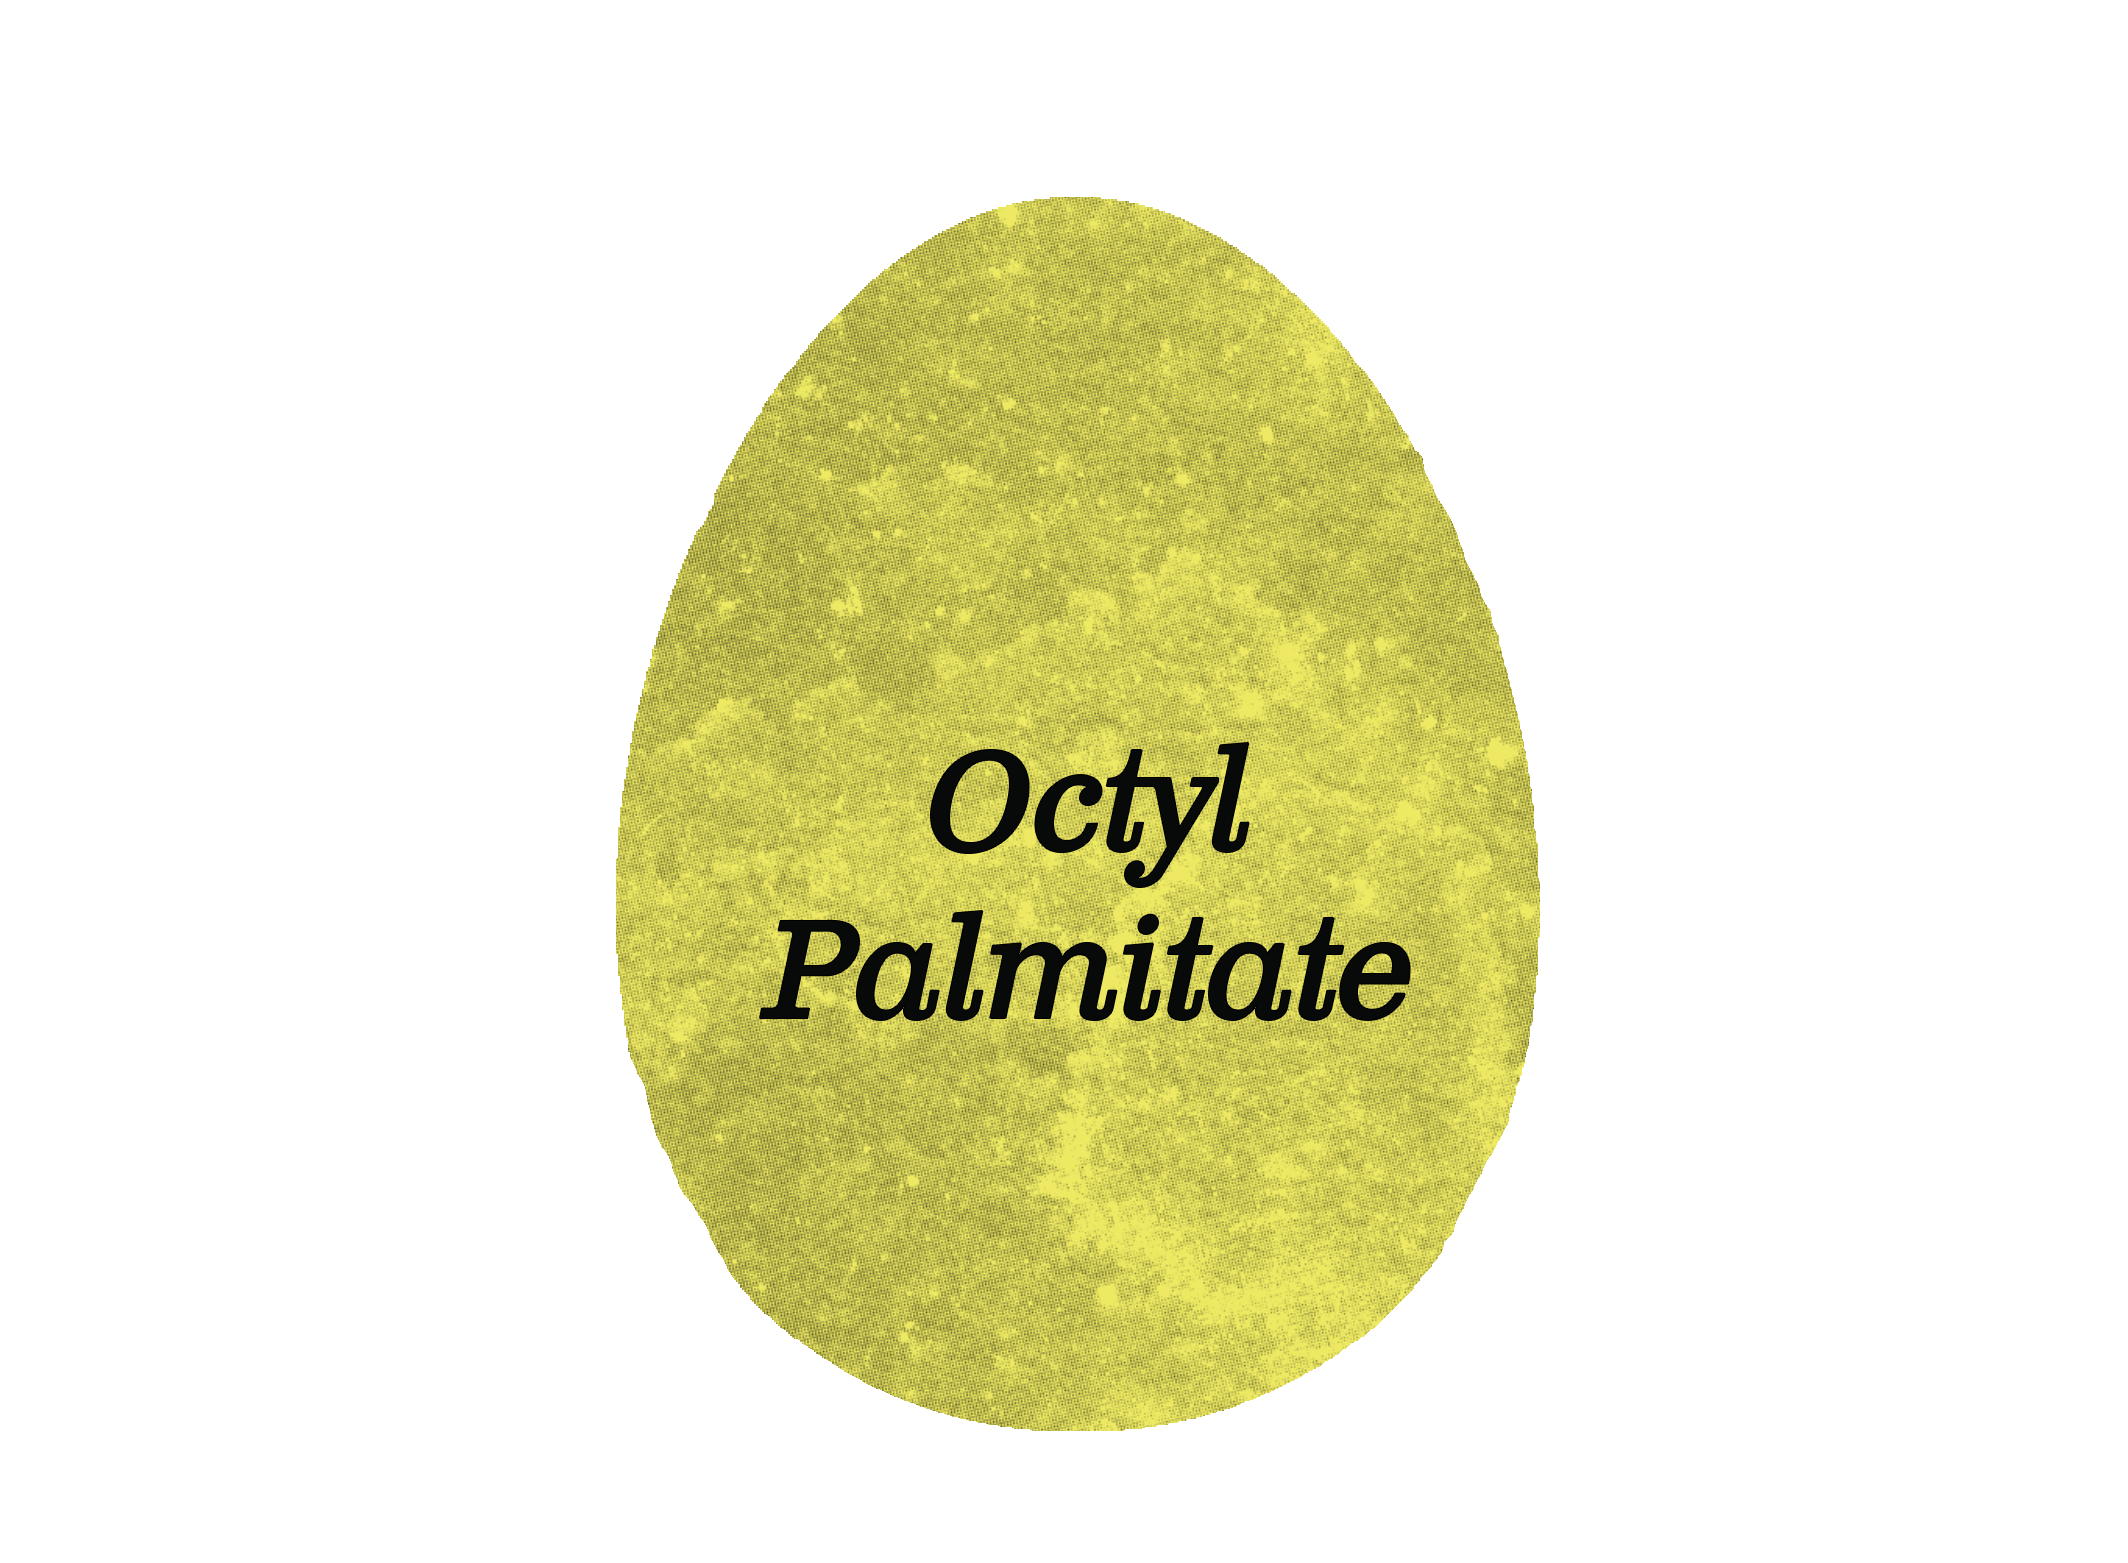 OctylPalmitate-SelvaBeat.png